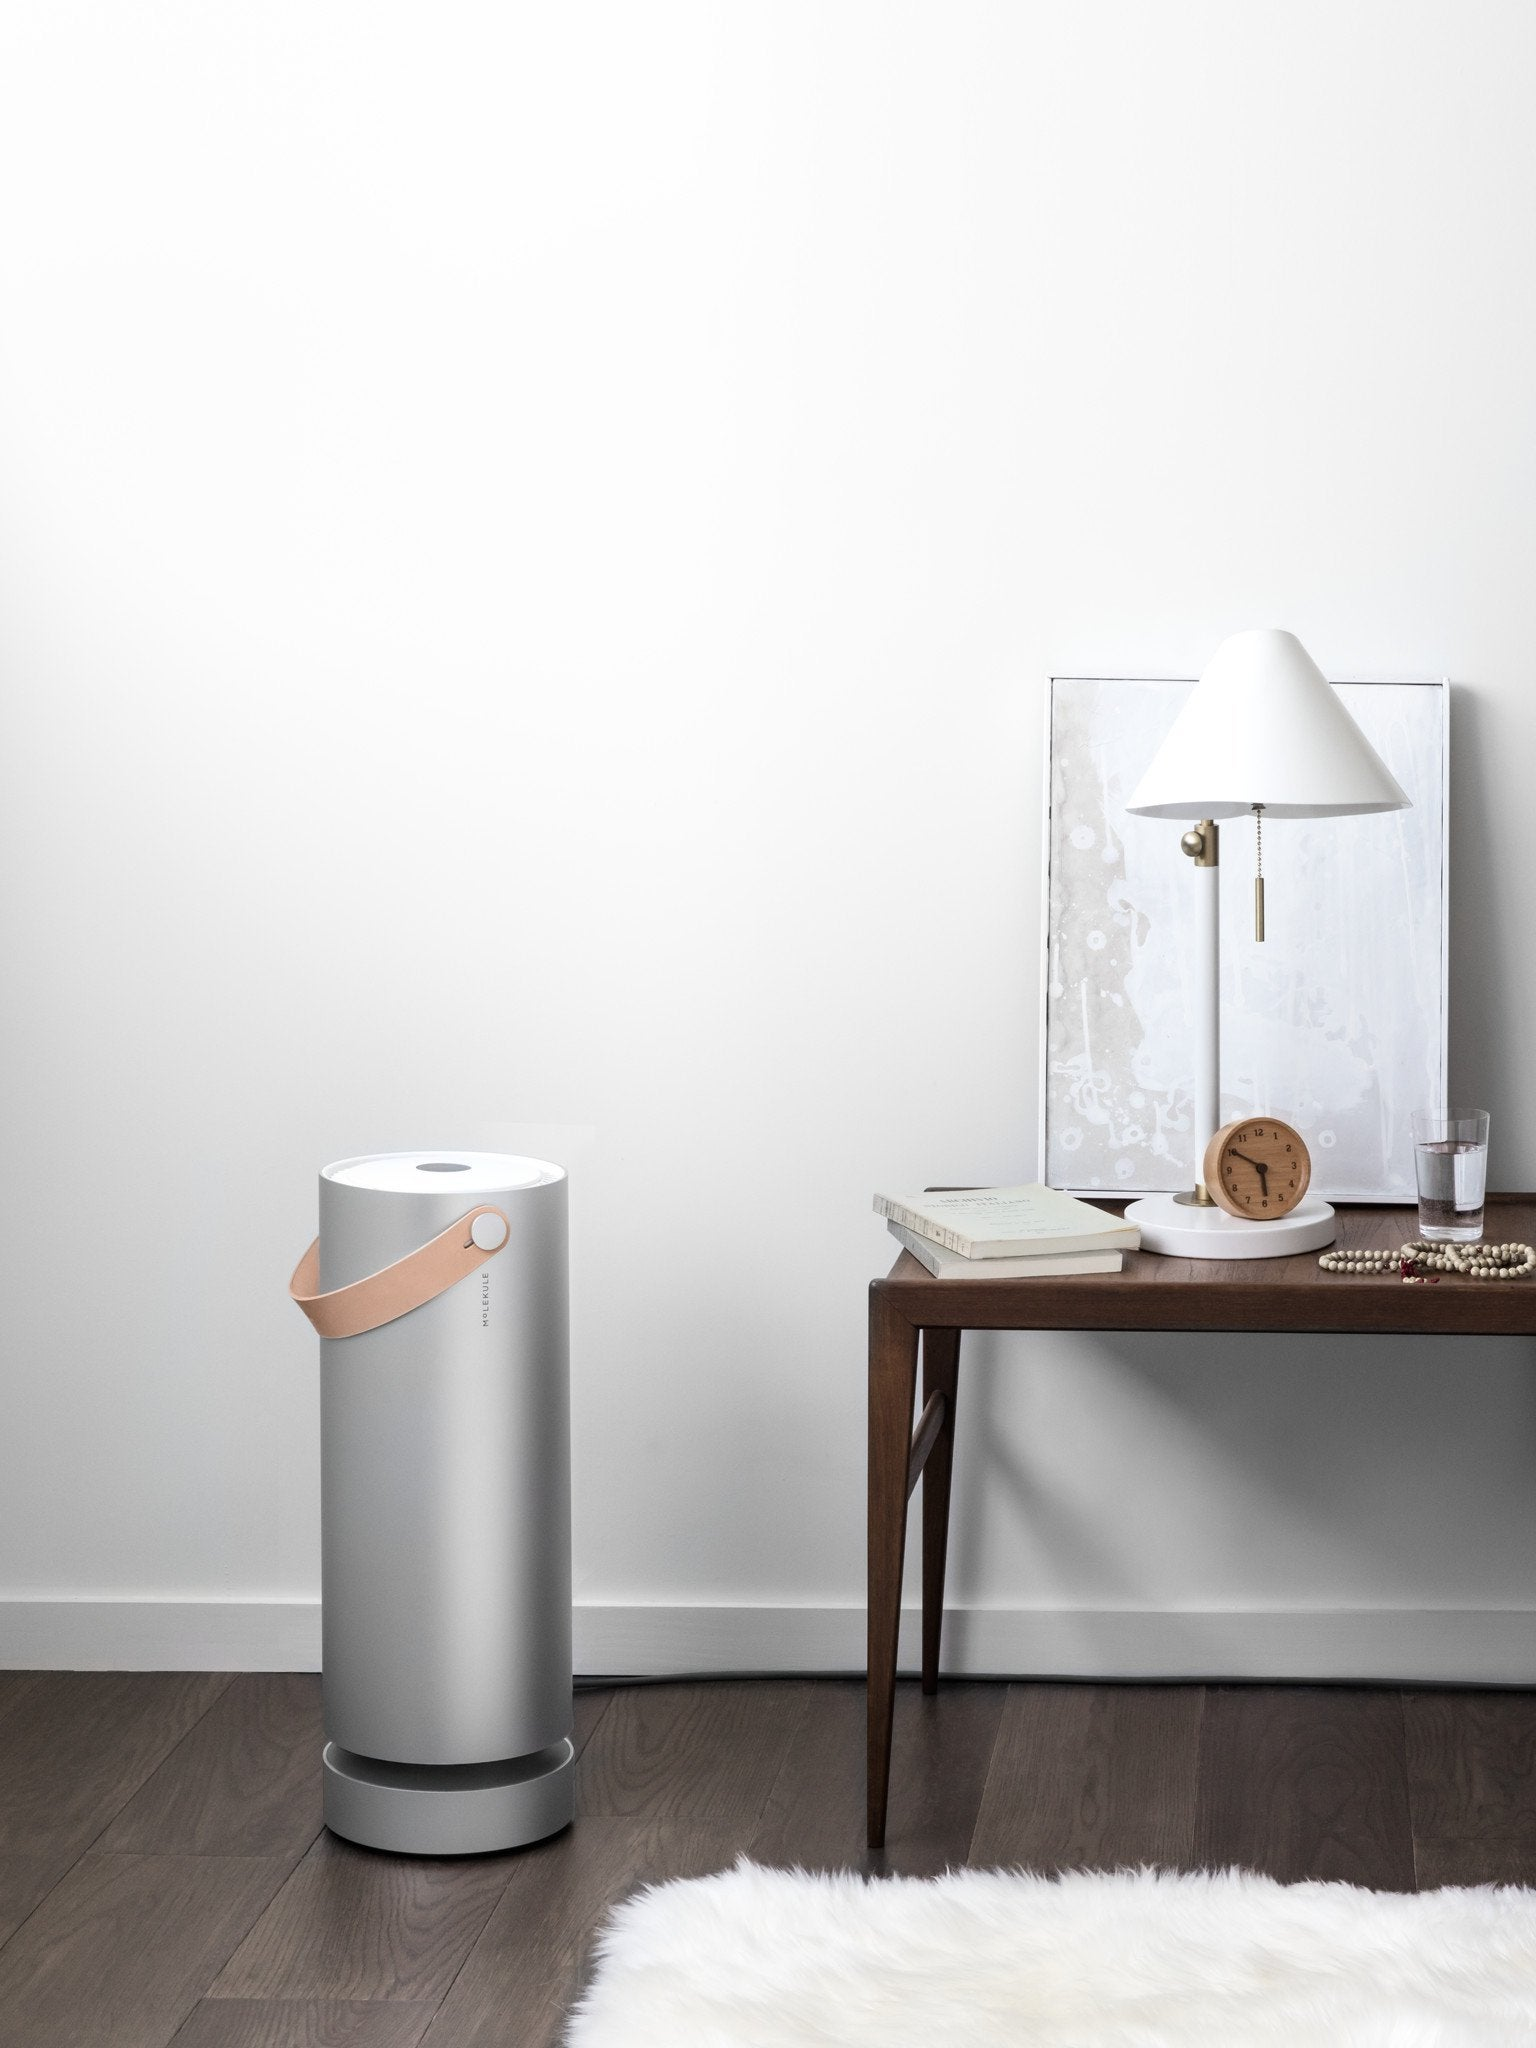 Molekule Air Purifier Amp 6 Month Filter Pack